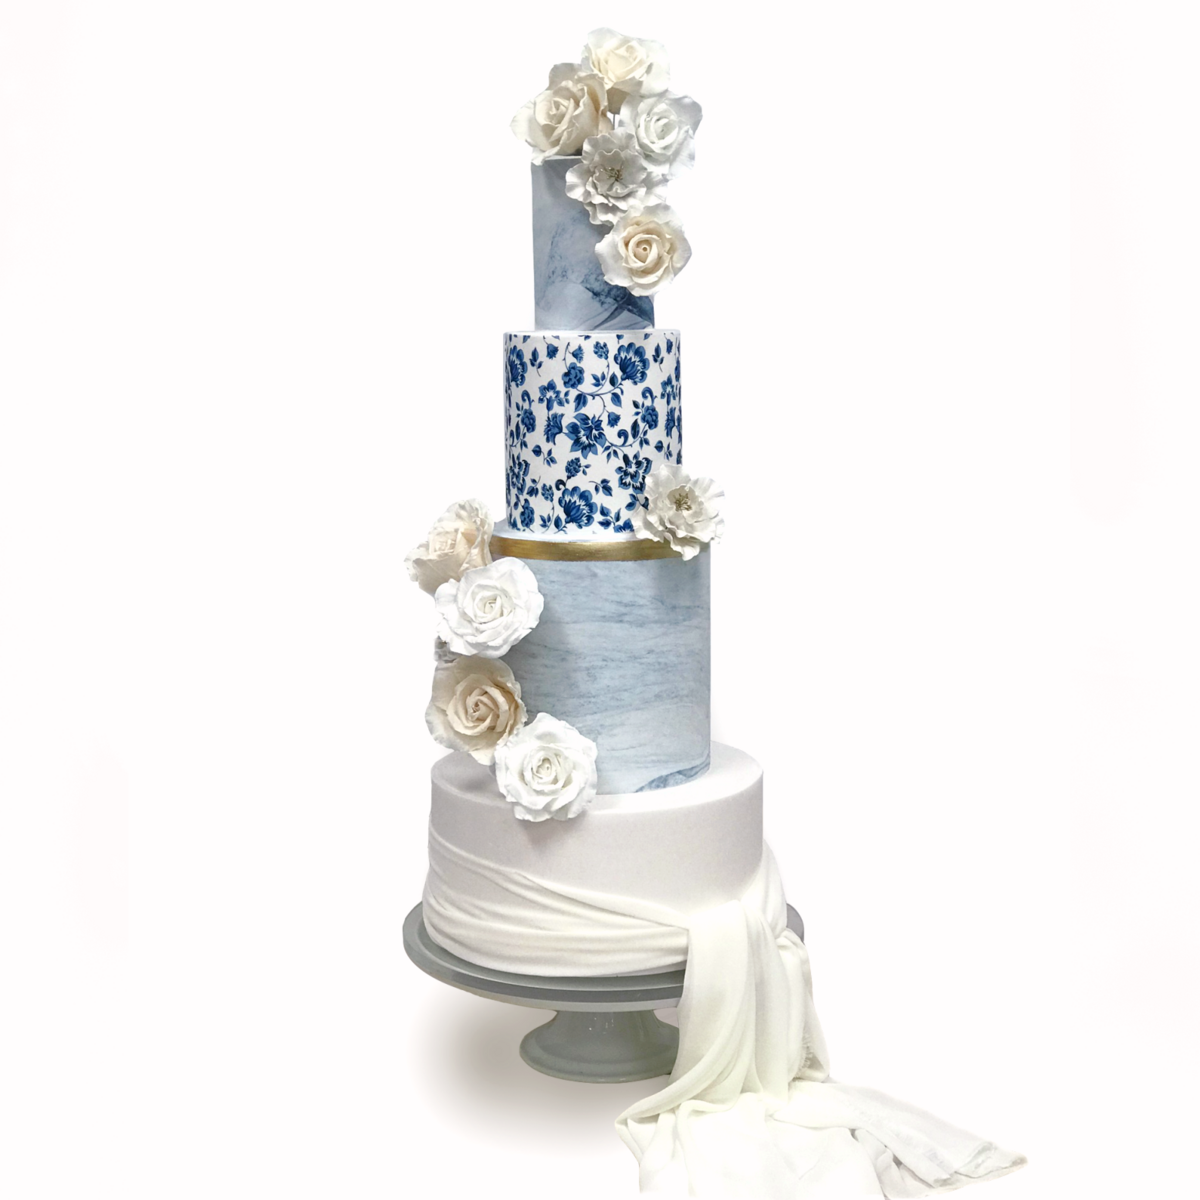 Whippt Kitchen - Wedding Fair show cake 2020